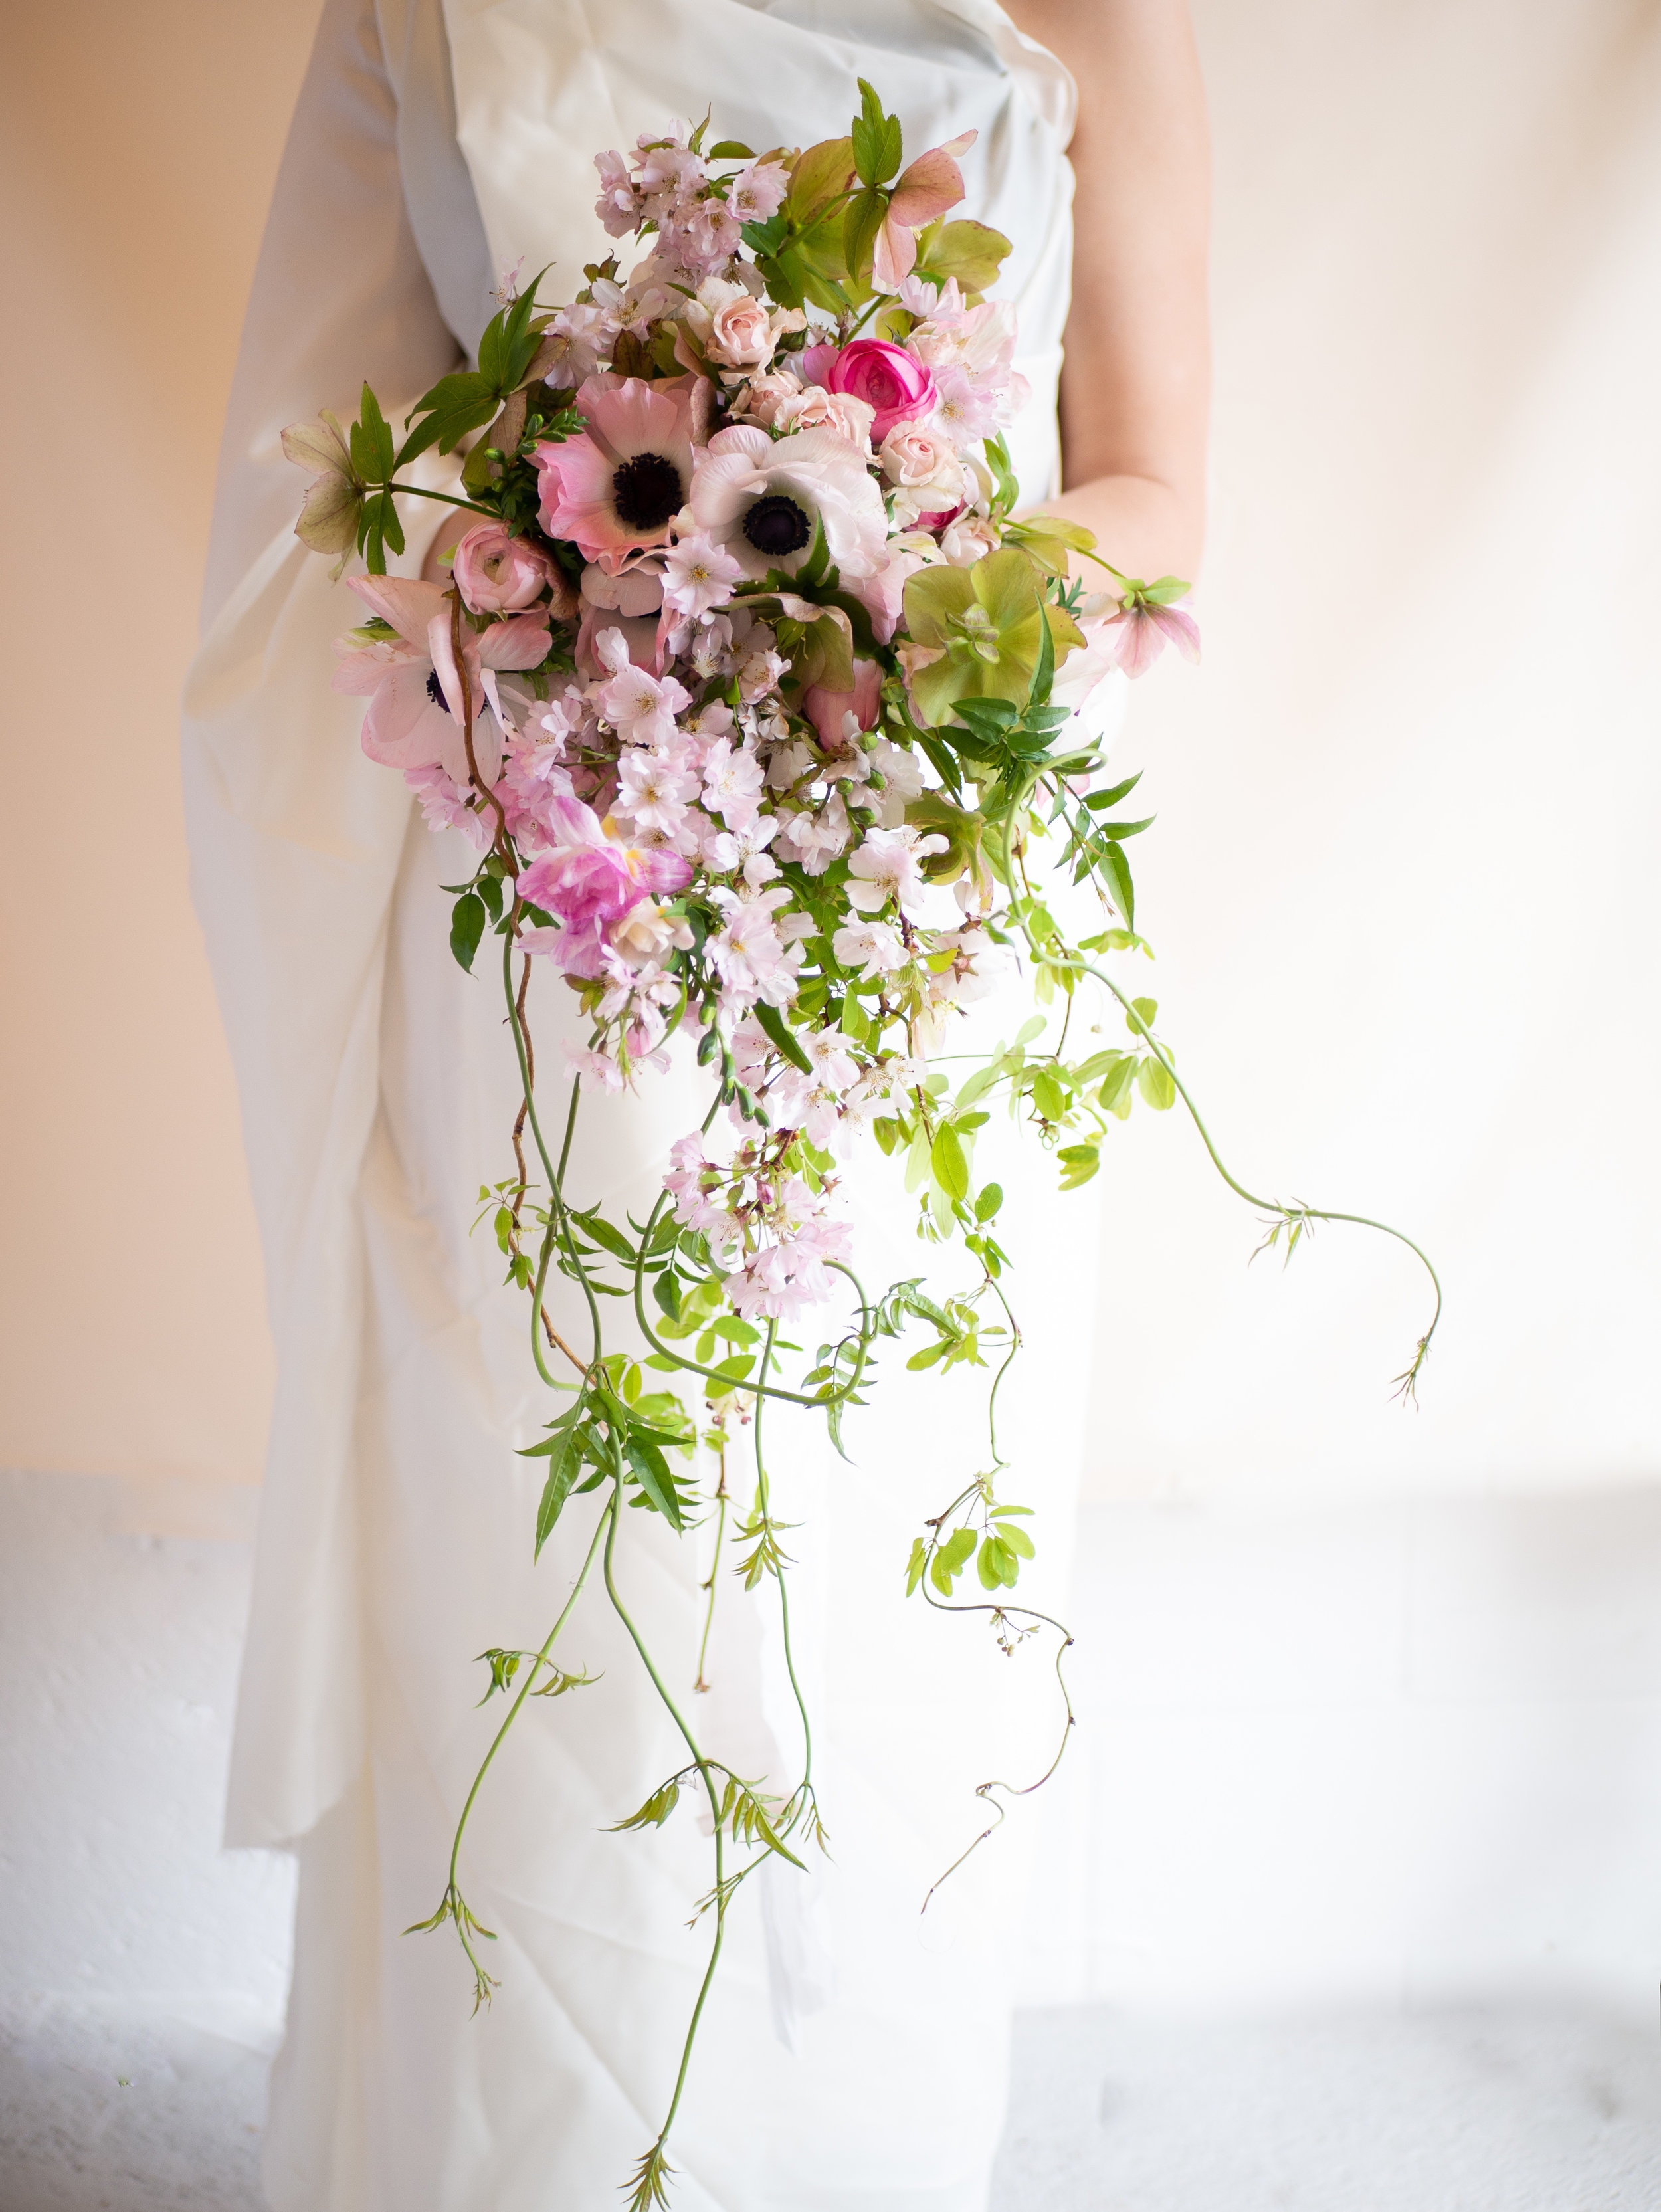 Learn how to make this beautiful bouquet….